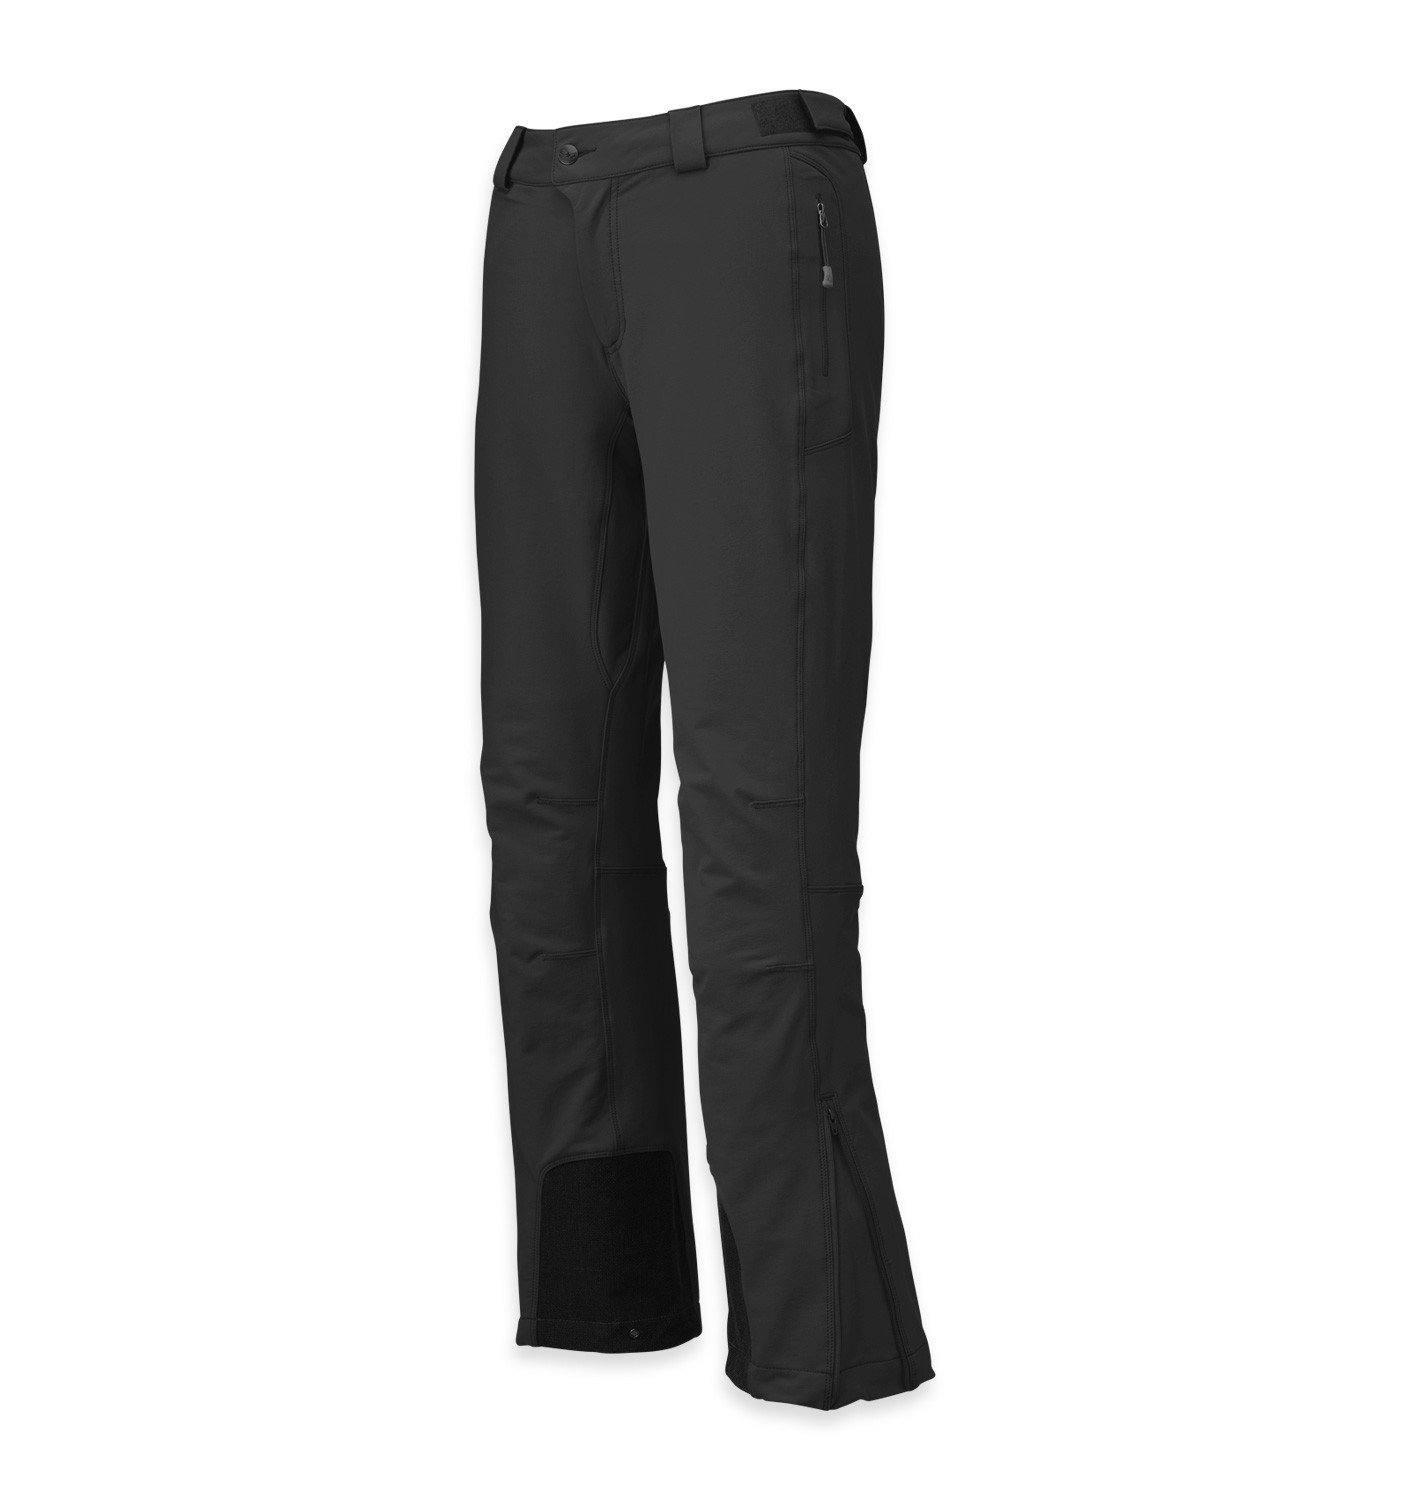 Outdoor Research Women's Cirque Pant, Black, X-Large